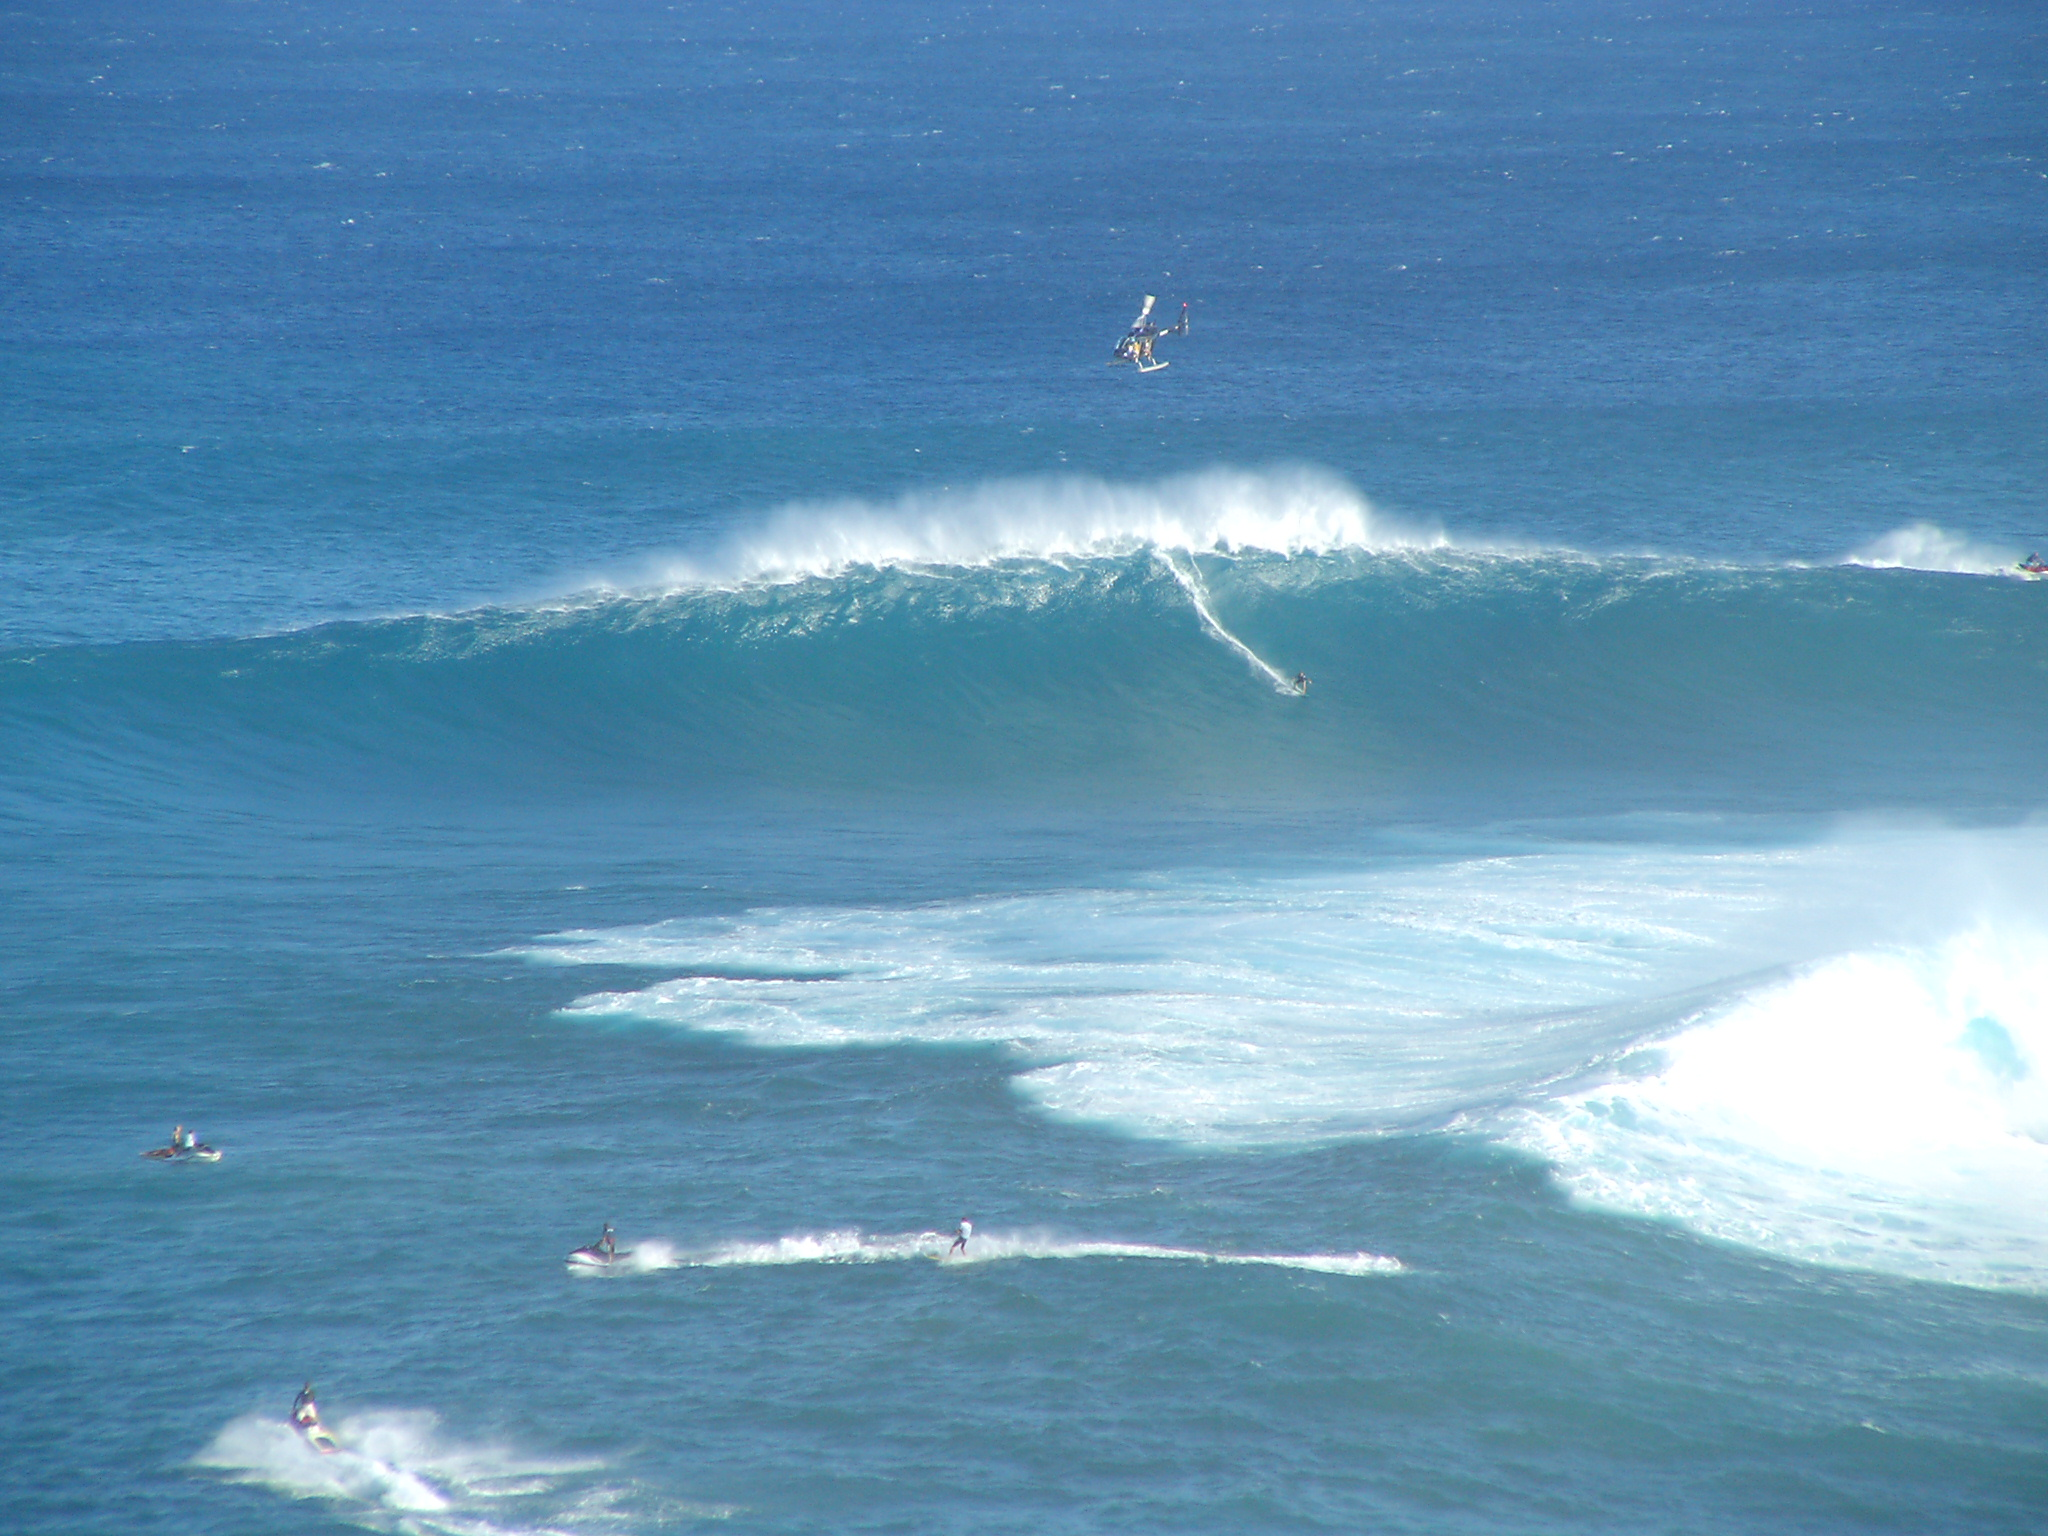 Big Wave Surfing At Jaws (Maui)